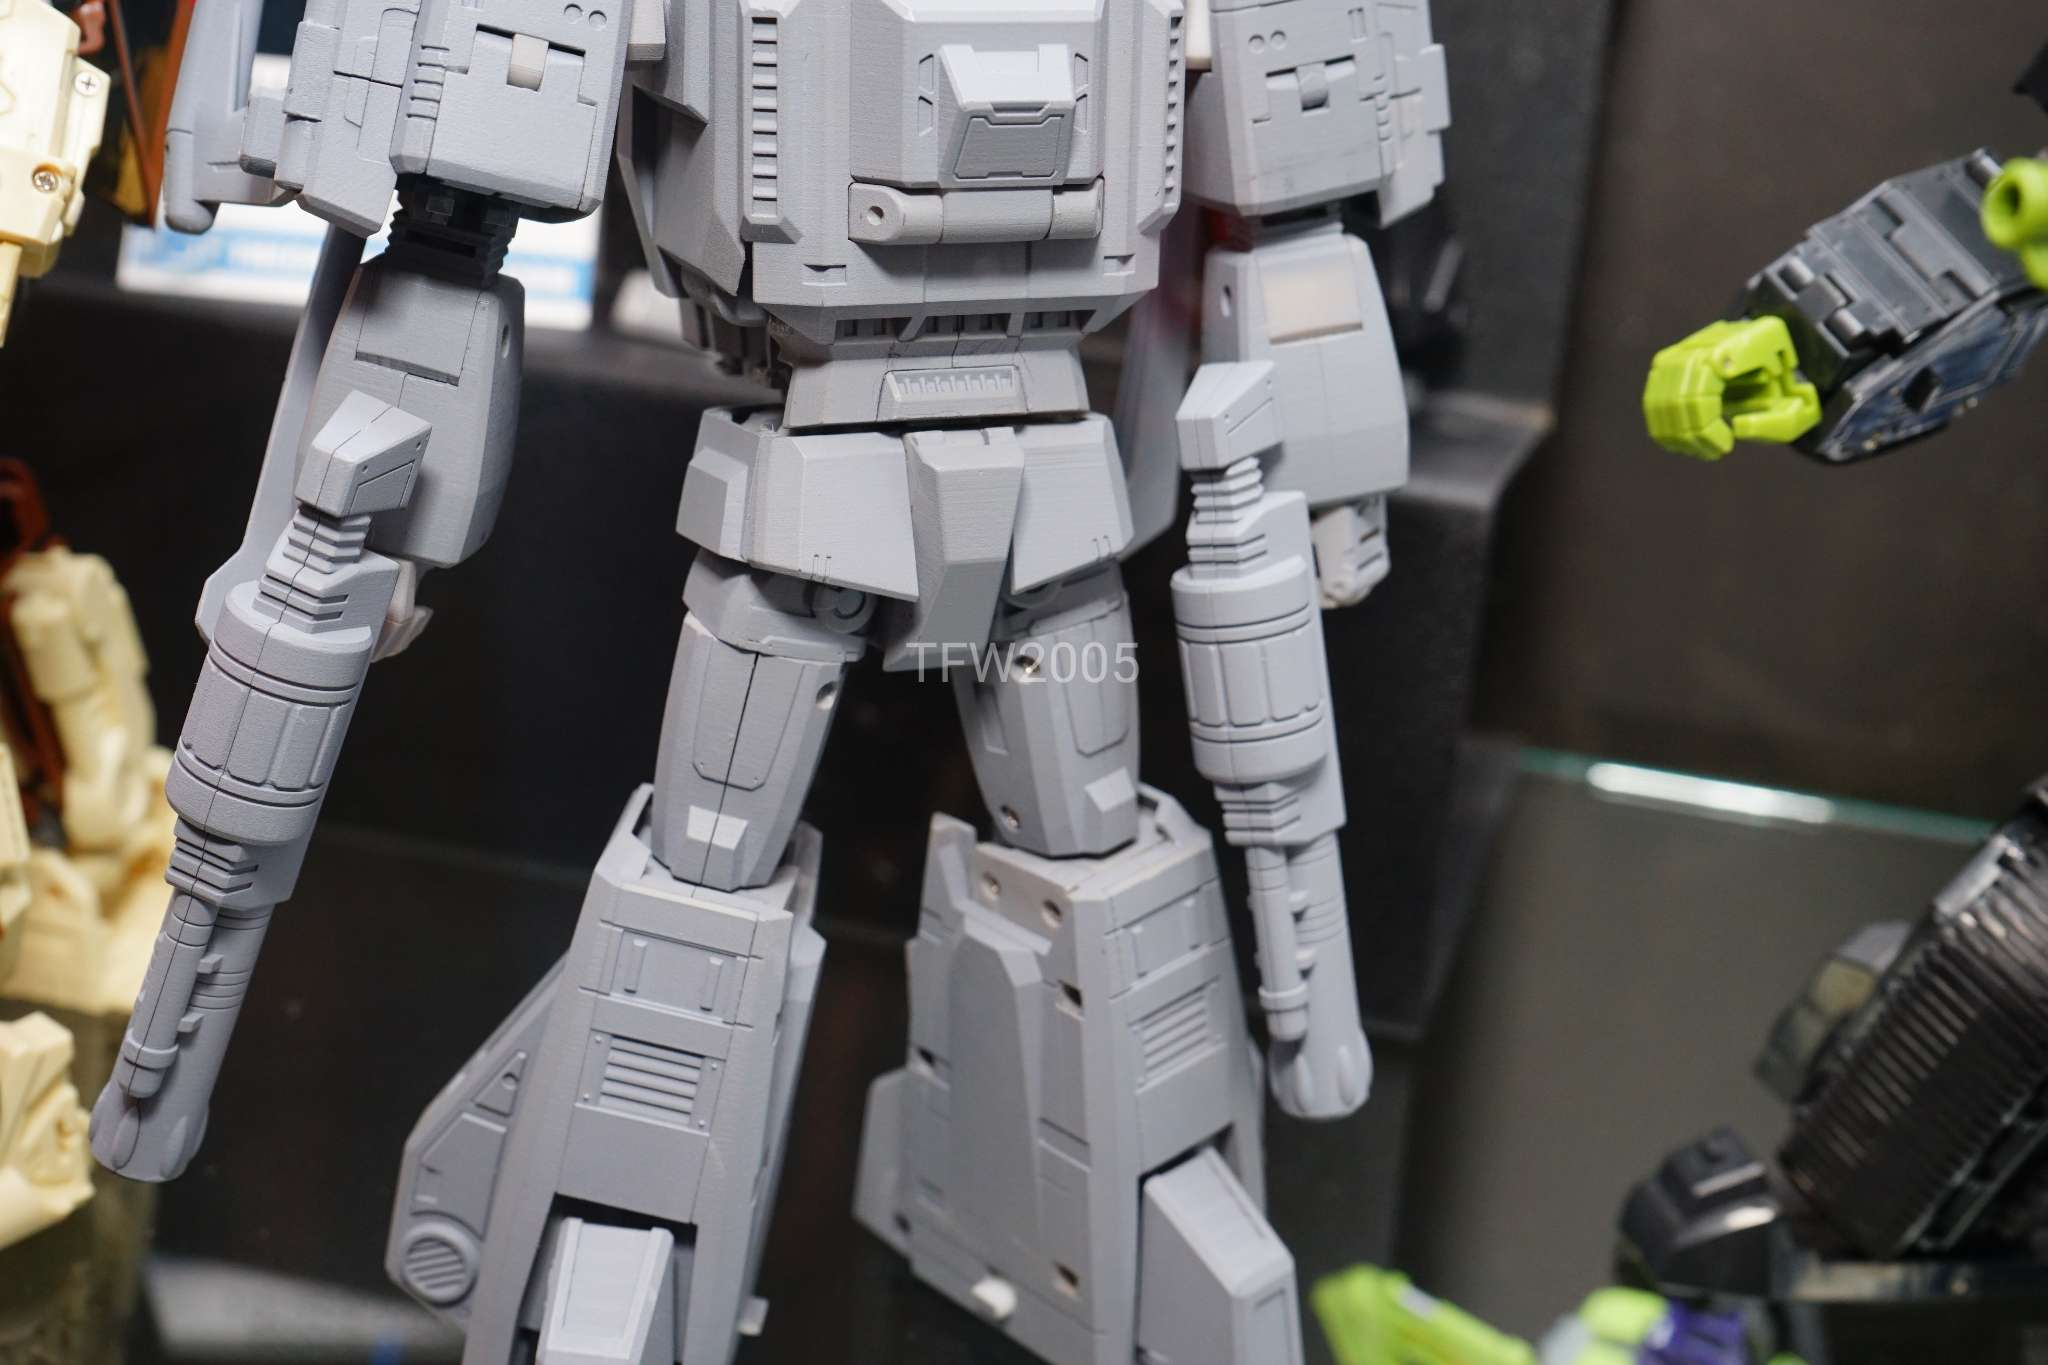 [Maketoys] Produit Tiers - Jouets MTRM - aka Headmasters et Targetmasters - Page 5 CfT4CXys_o